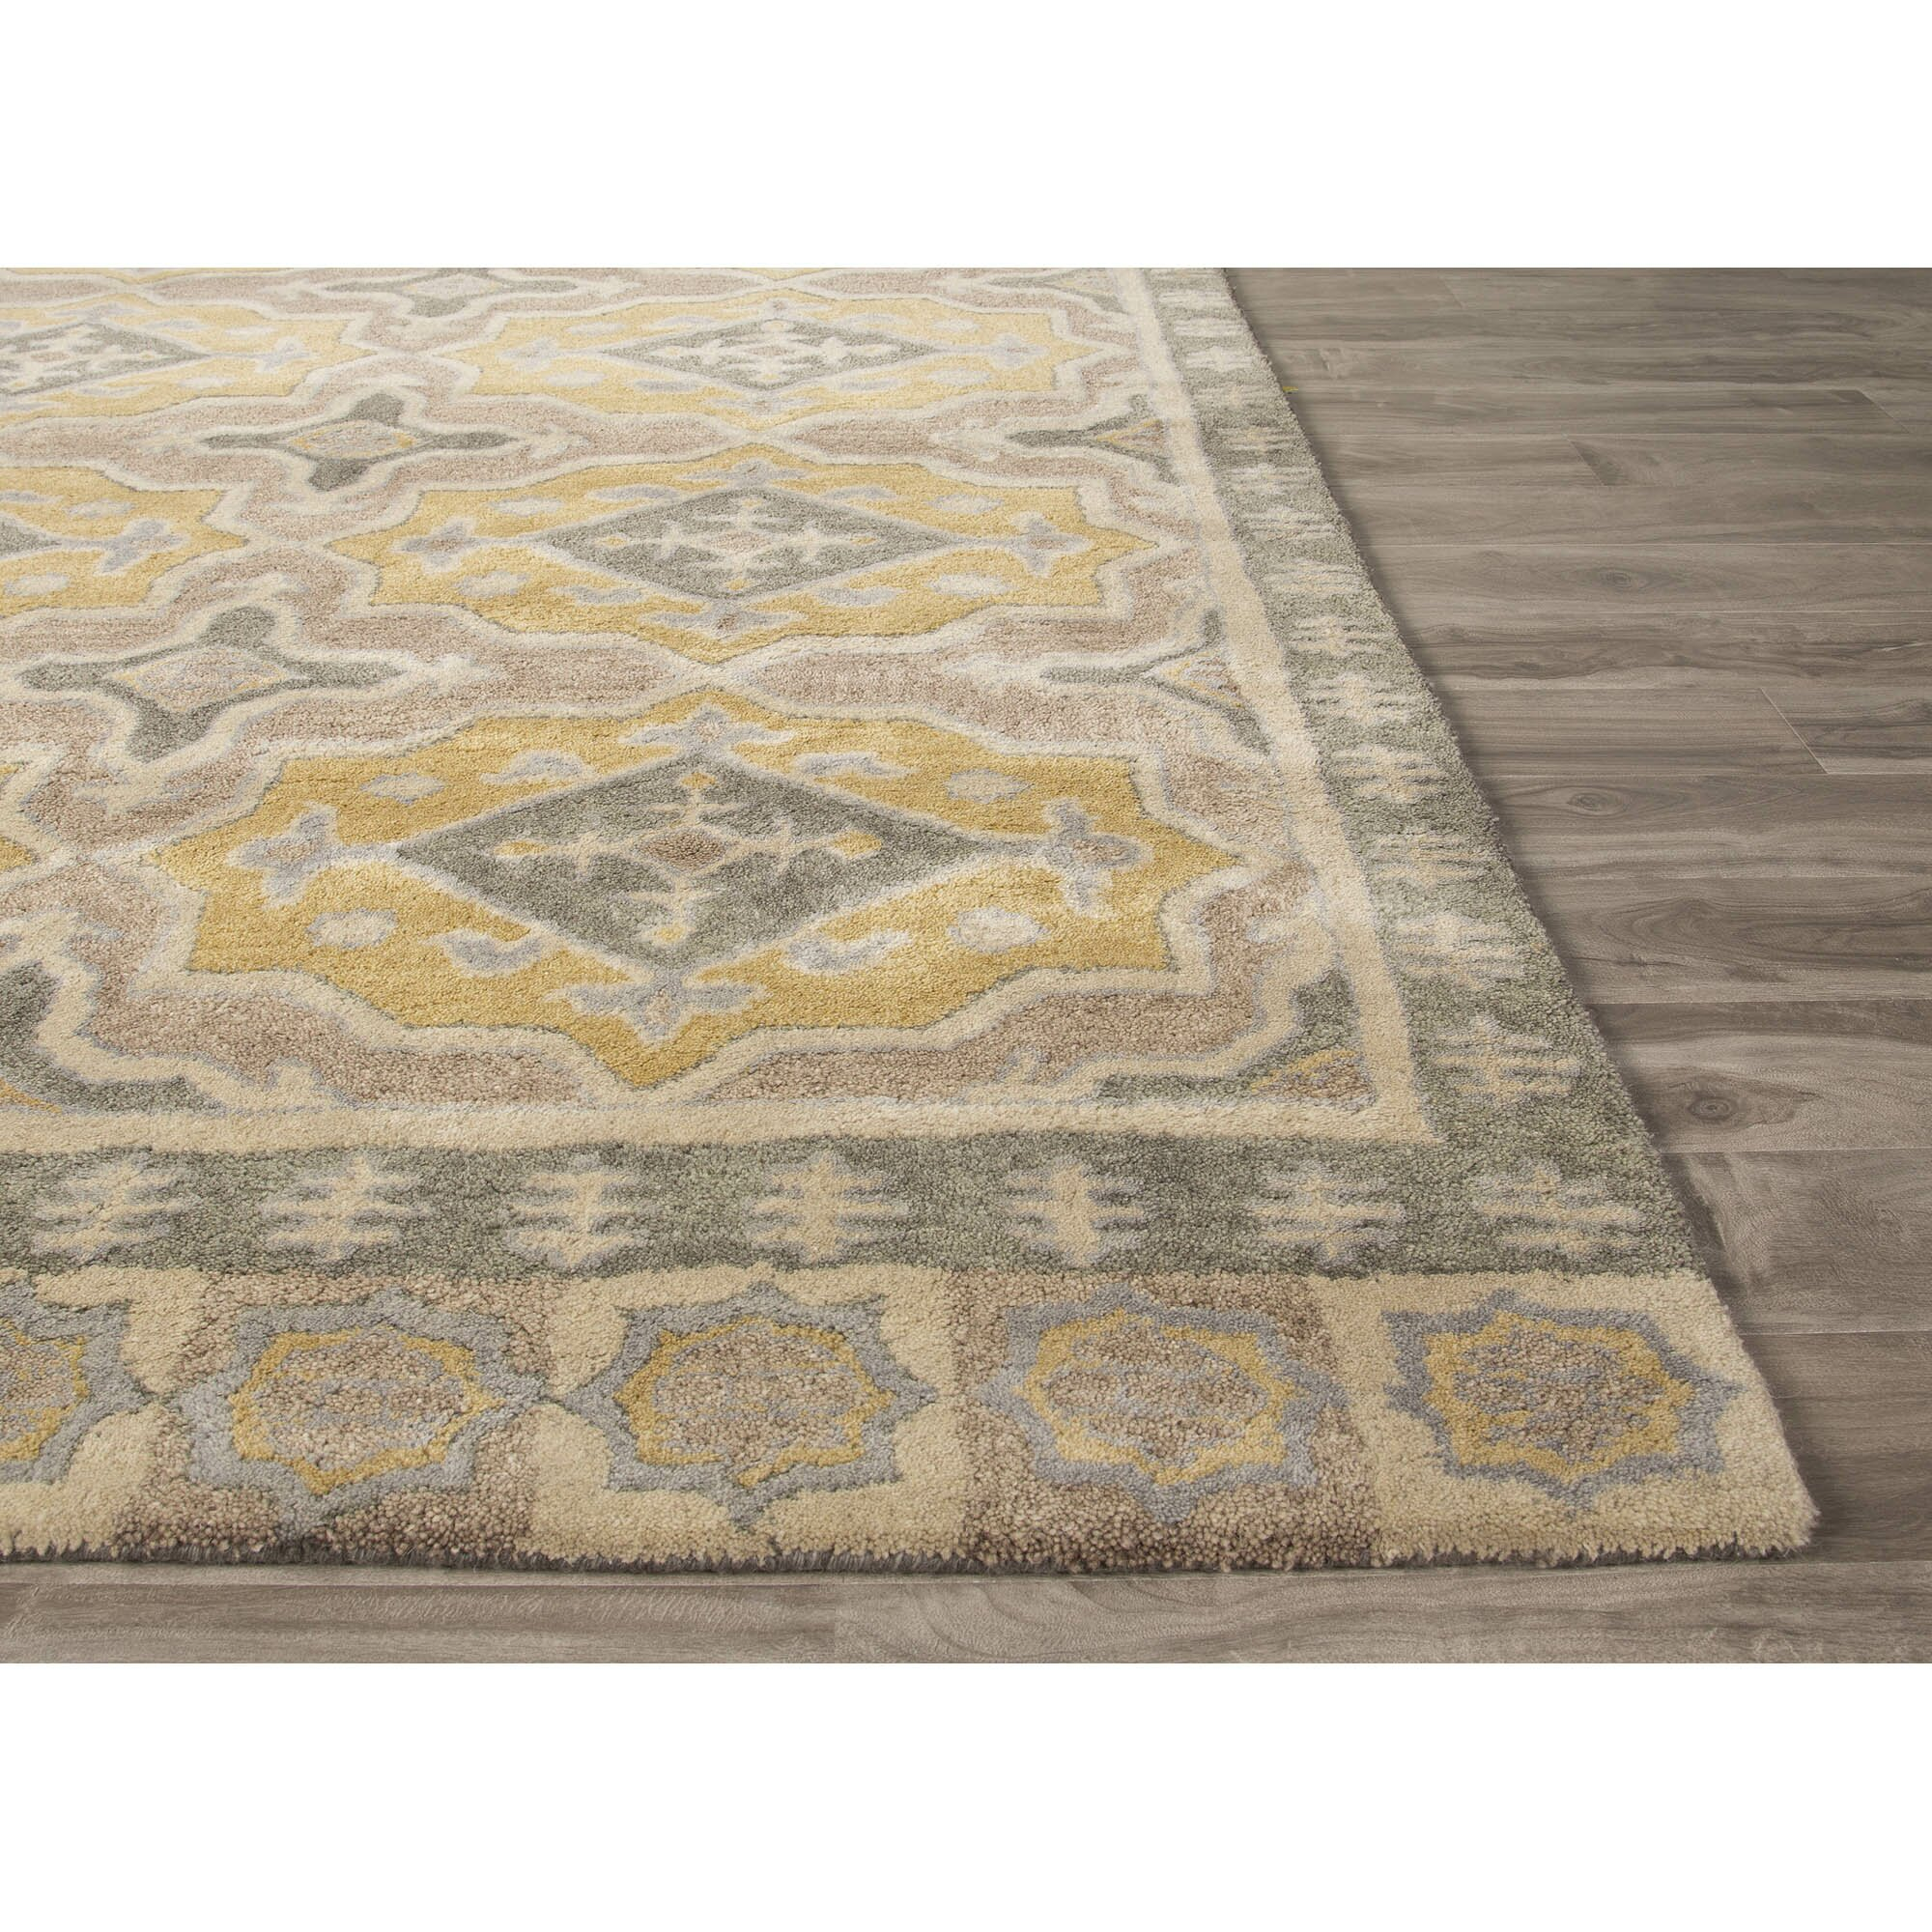 JaipurLiving Pendant Hand-Tufted Gray/Yellow Area Rug